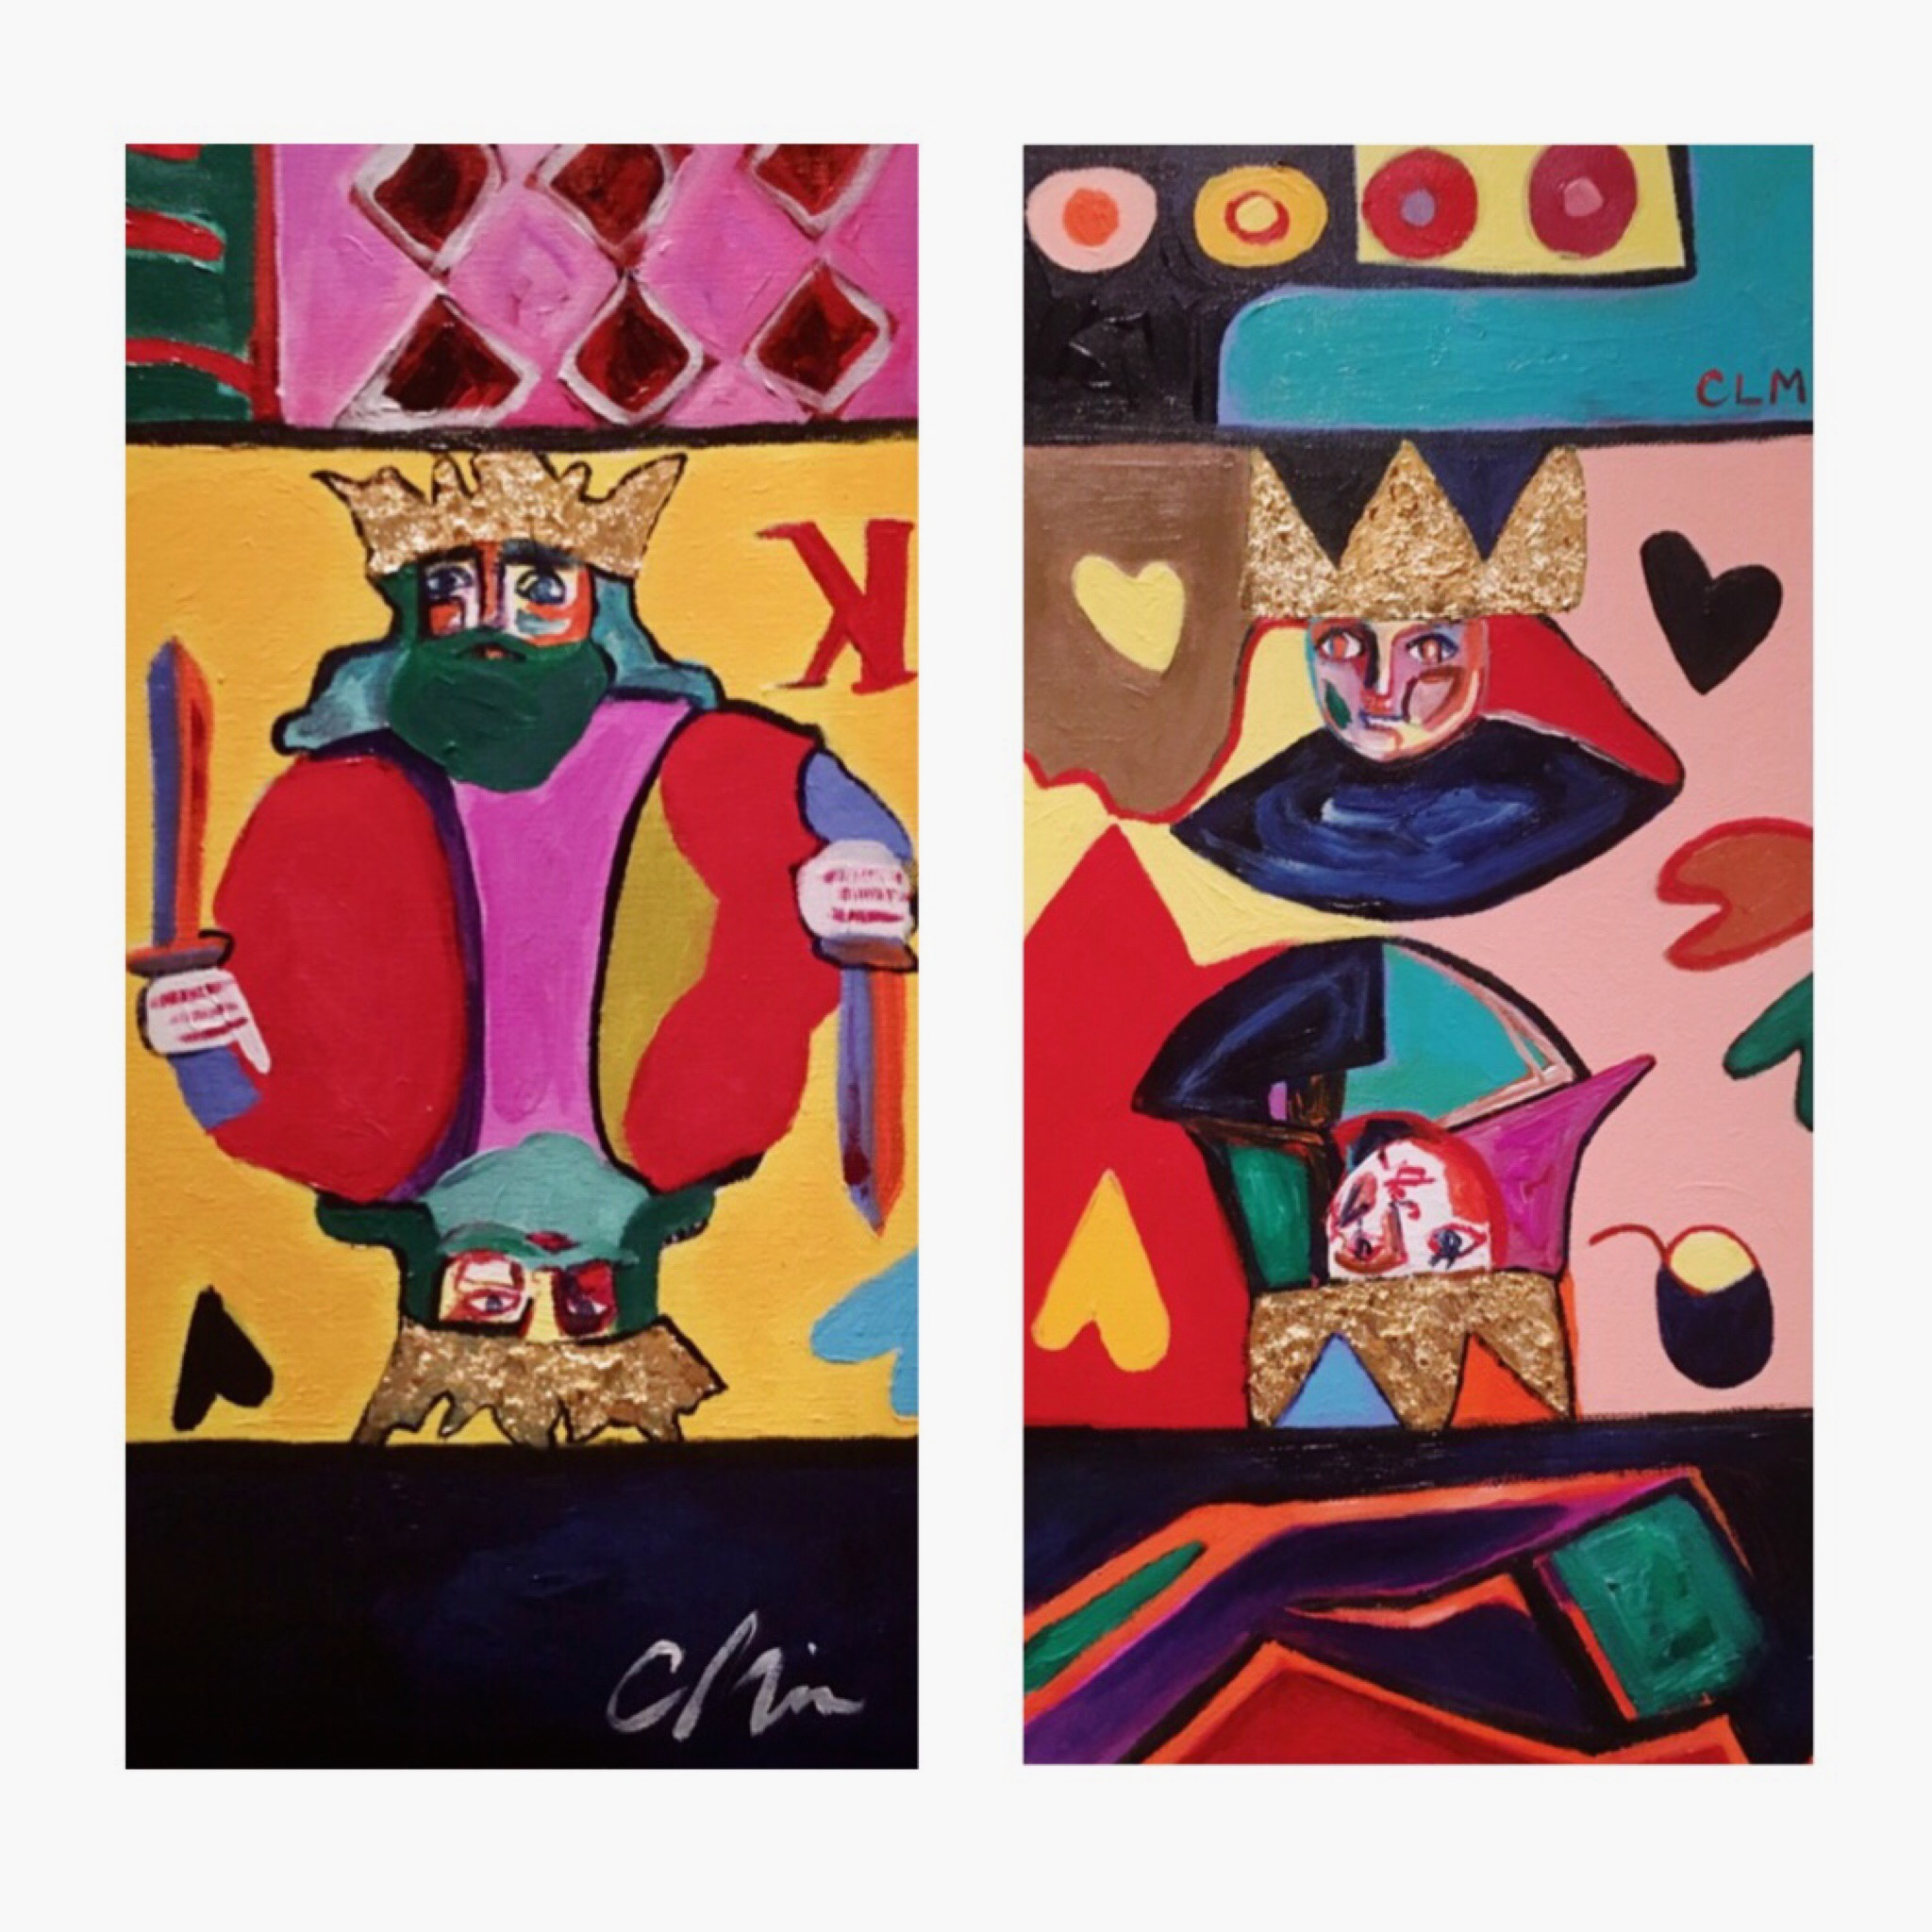 """Mad Royals - Cynthia Leigh Miller10""""x20"""" each, Gold leaf and heavy-body acrylic on canvasSOLD - $175 for pair2019"""